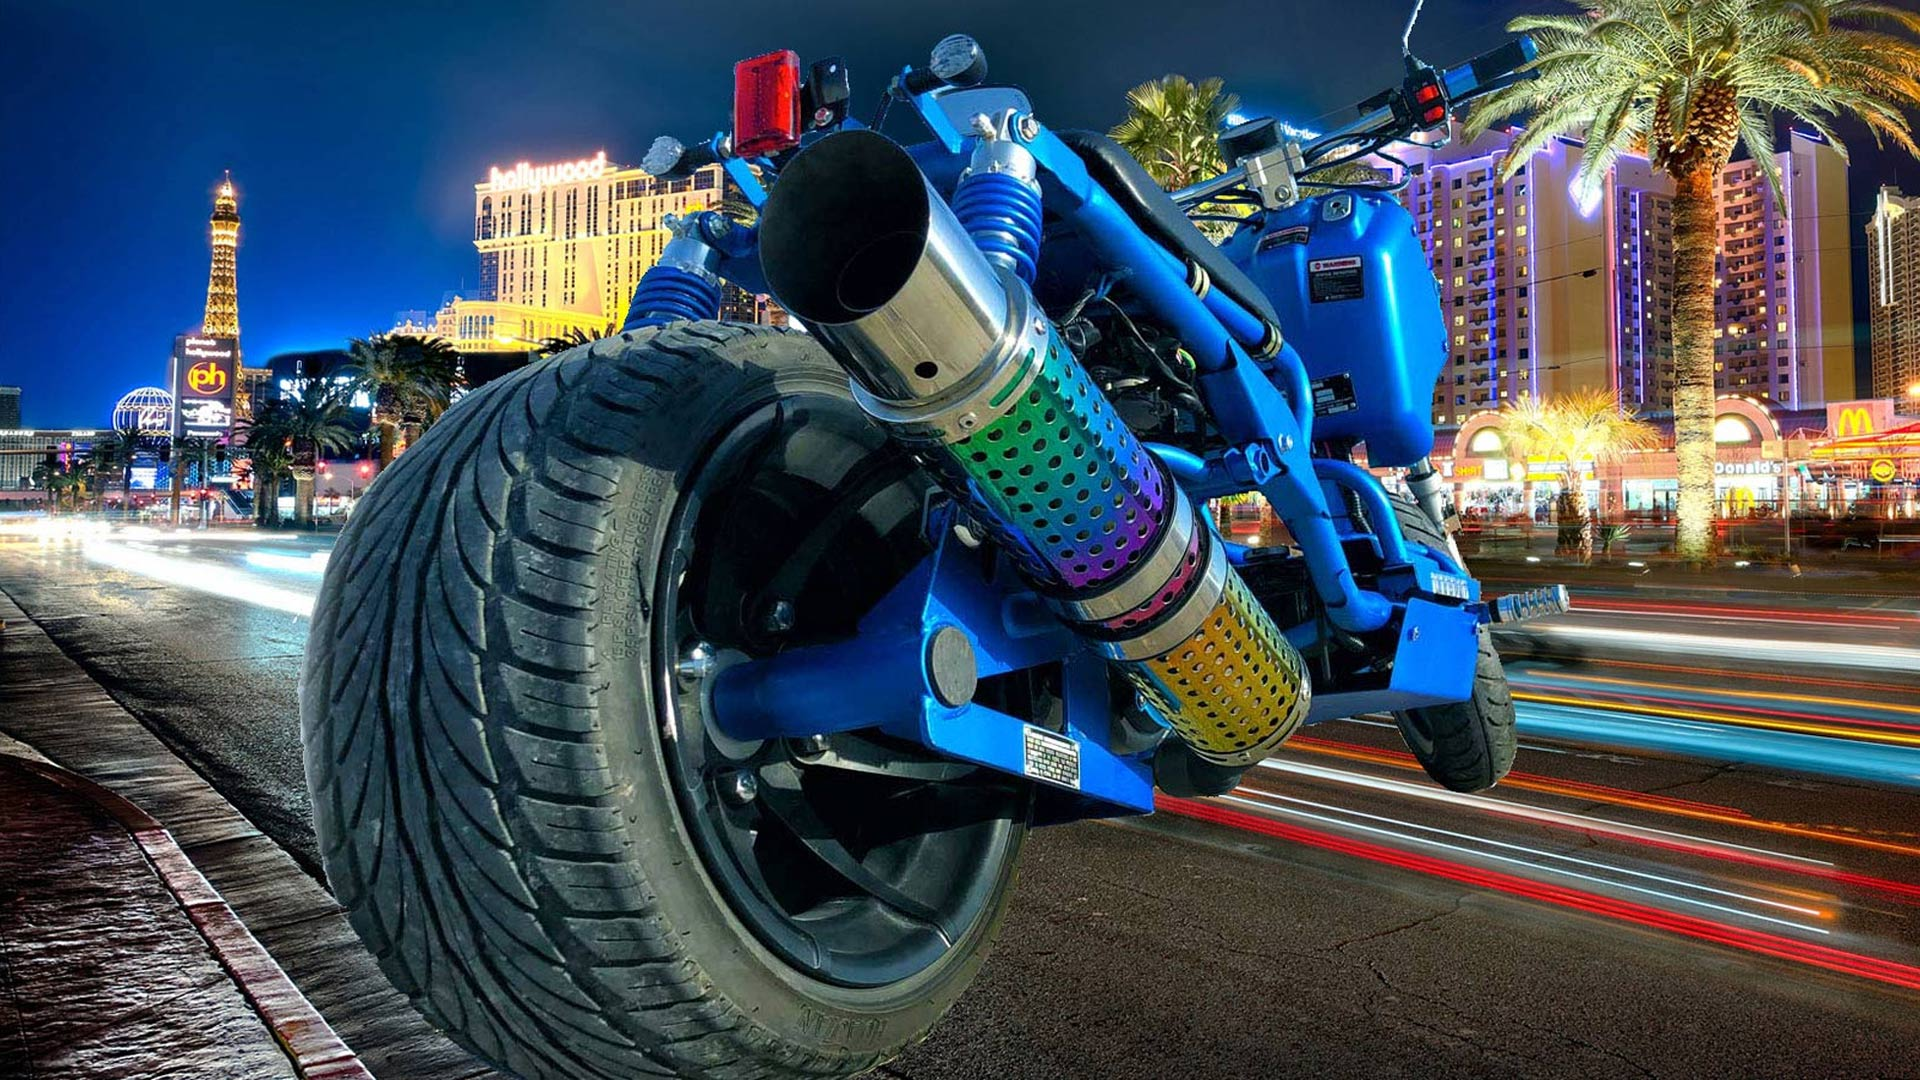 Las-Vegas-Scooter-for-Rent-Mad-Dog-Scooter-2